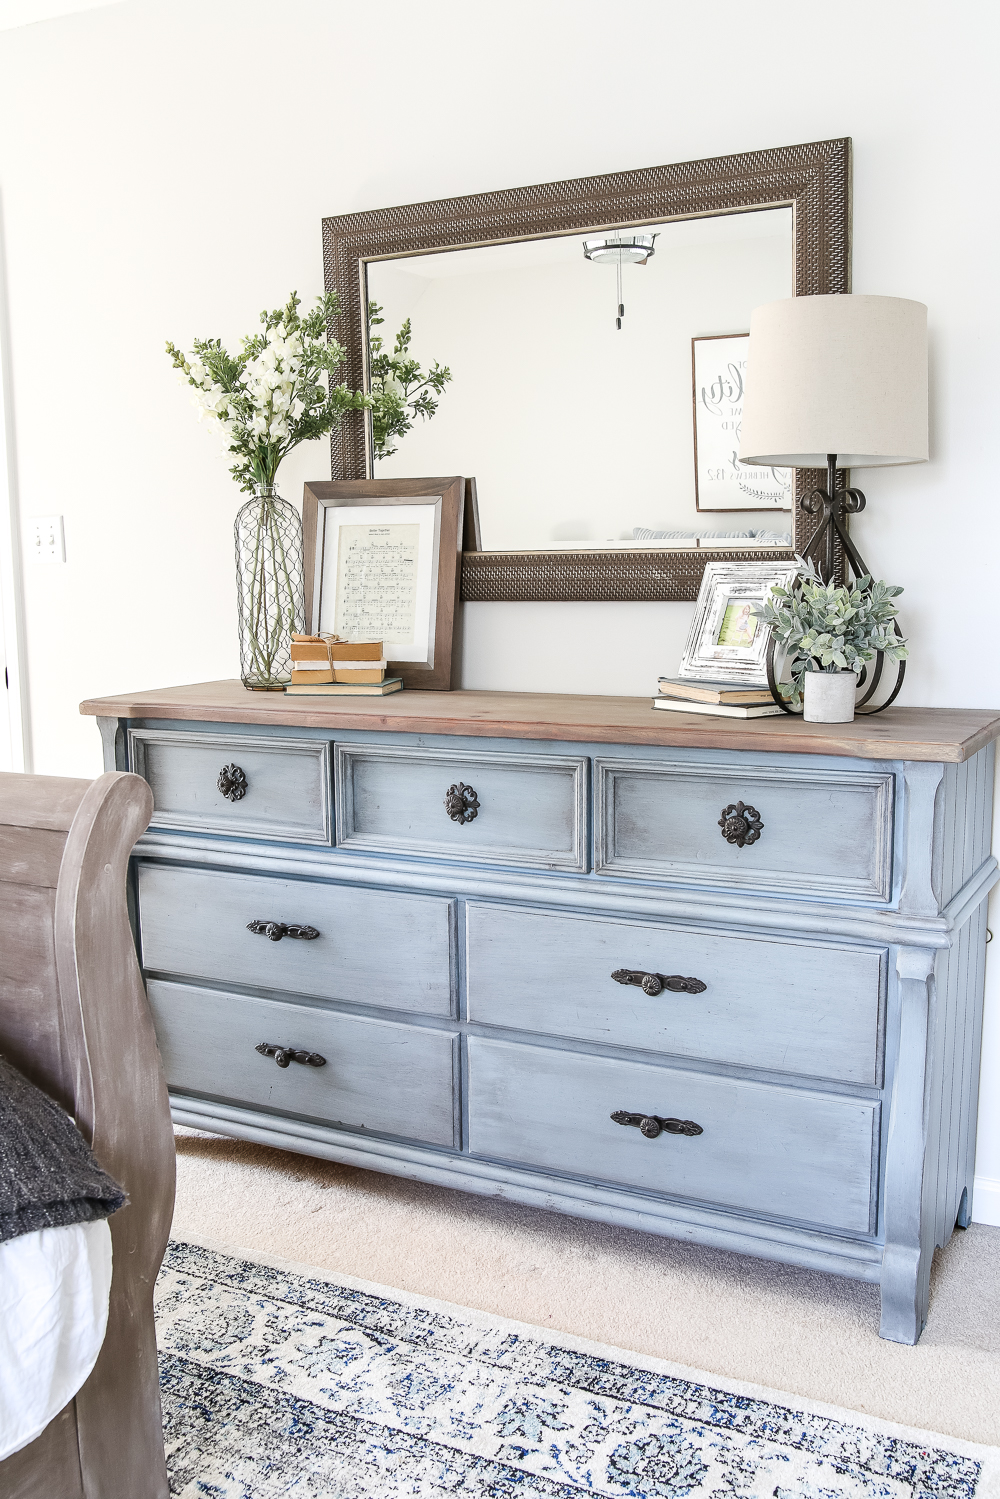 13 Best Paint for Furniture of 2020 Reviews Buyers Guide 1